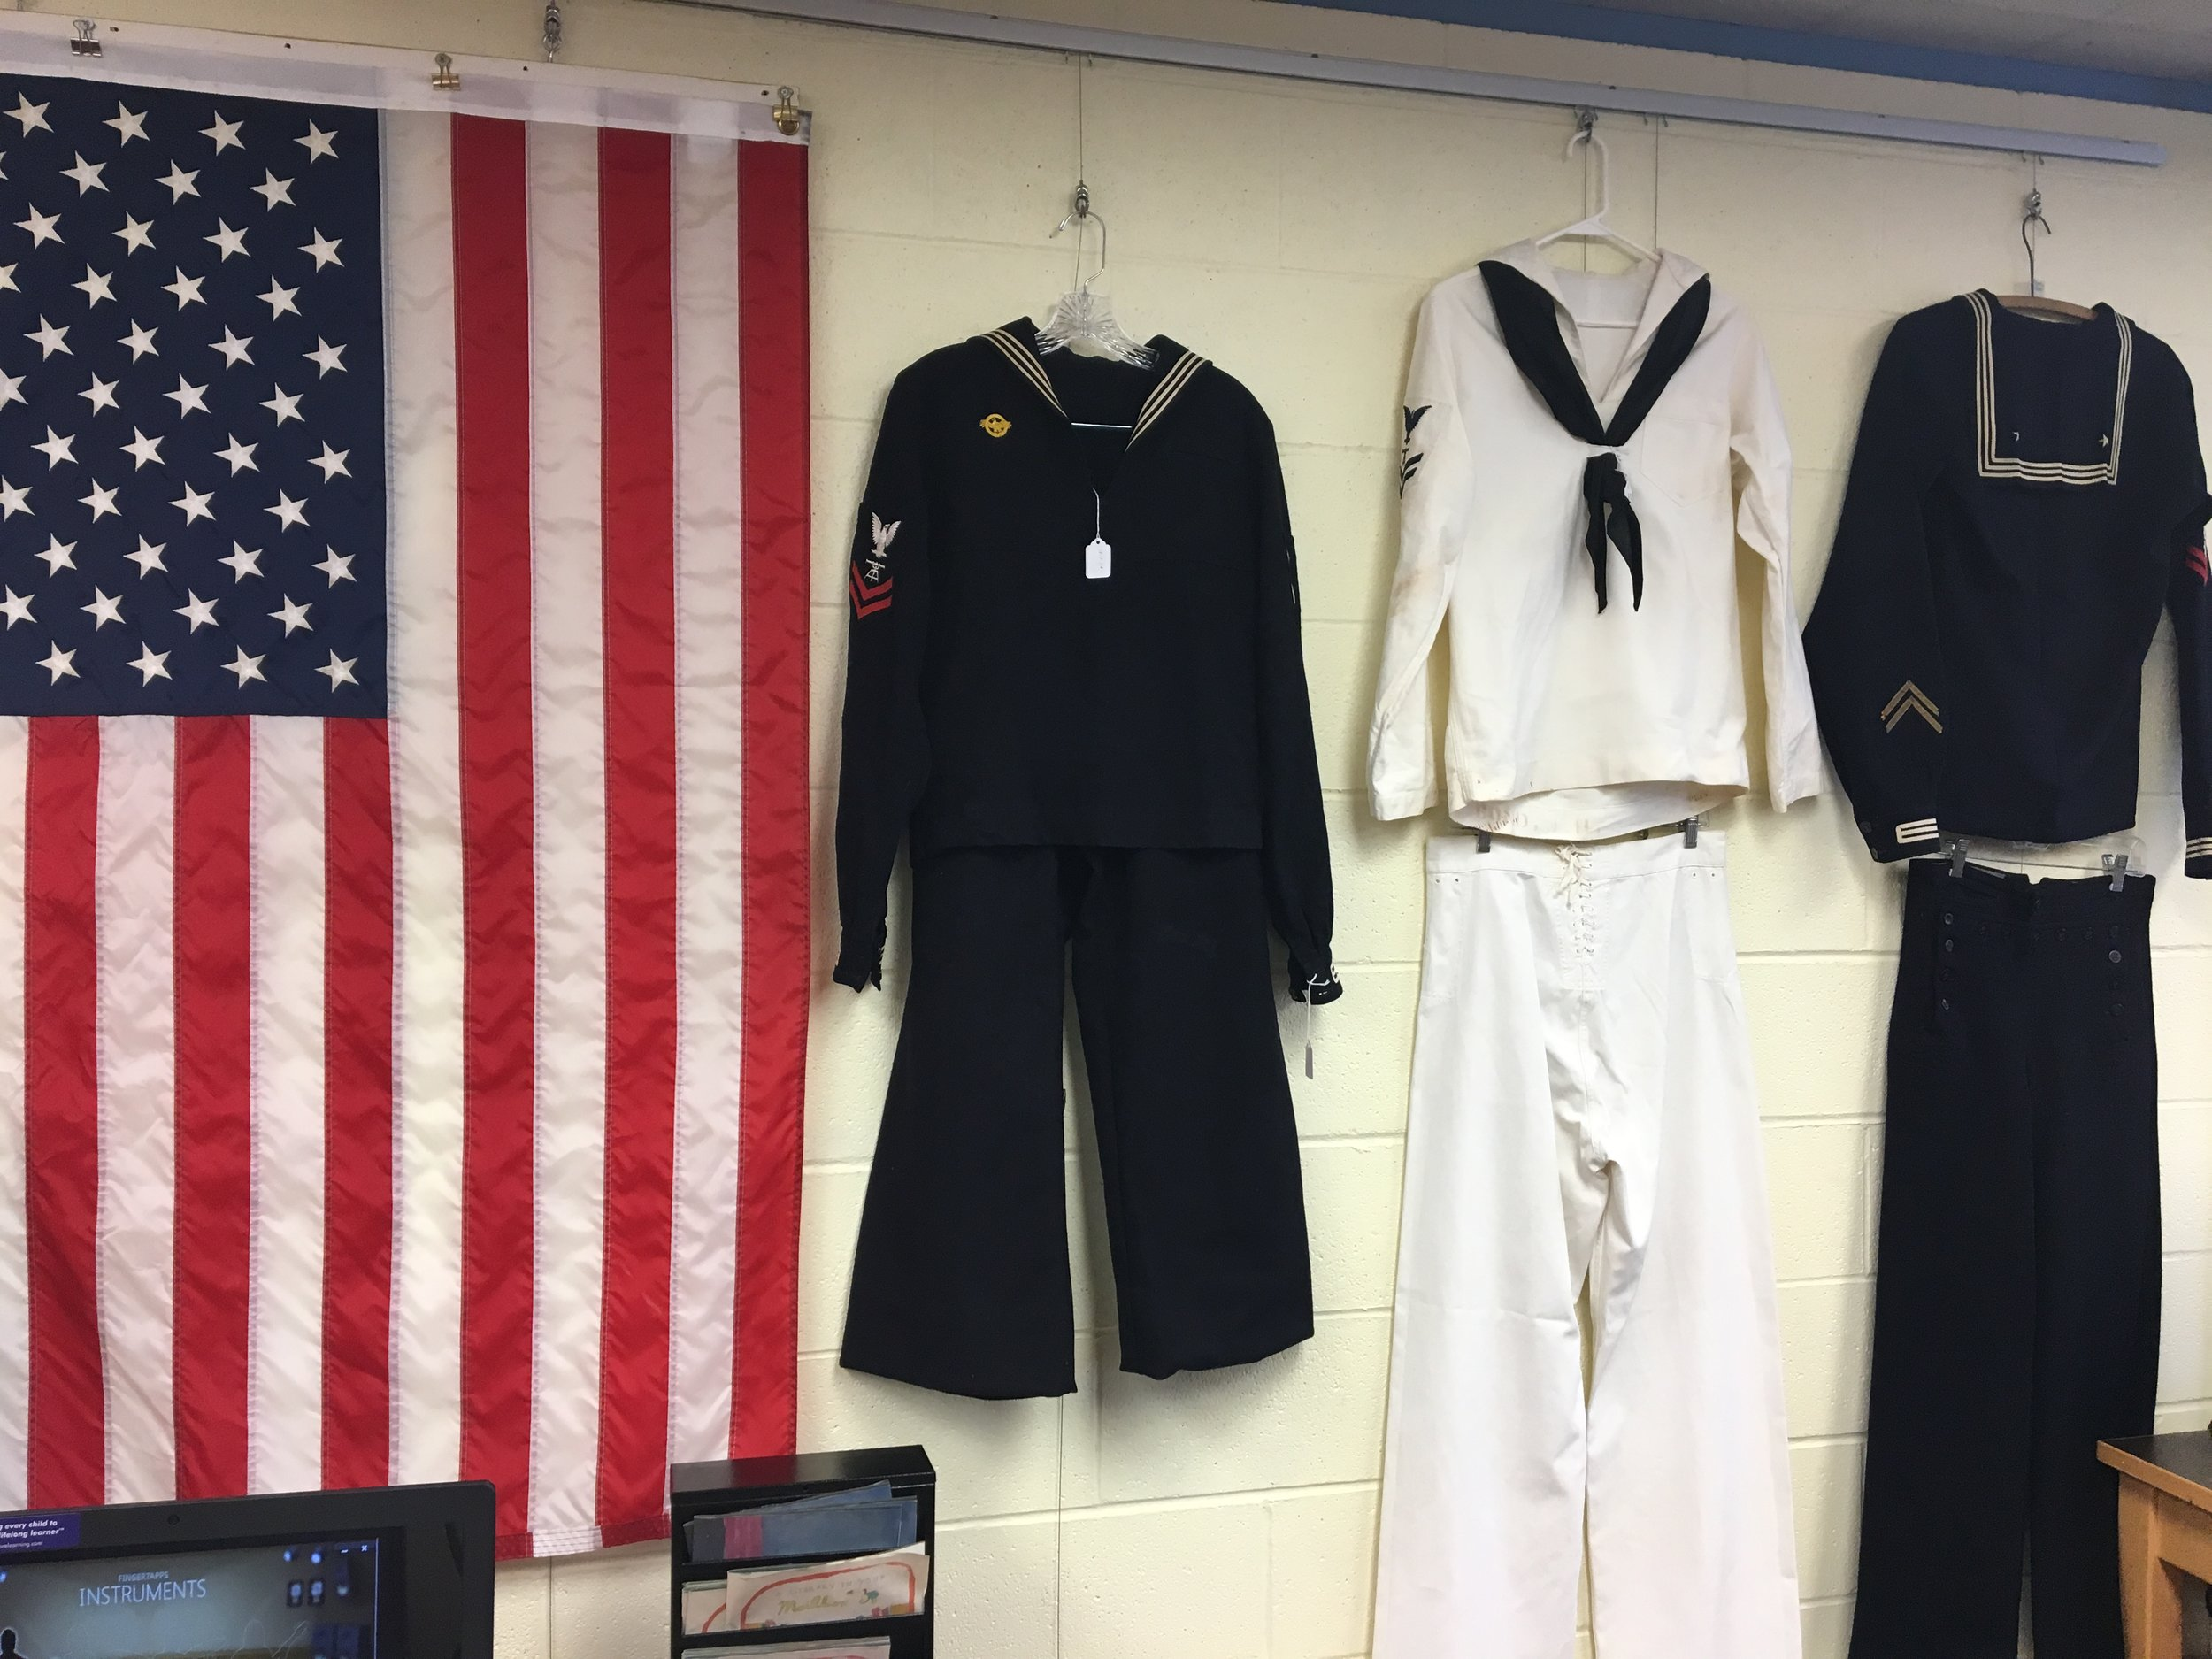 Naval uniforms are hung along the walls of the library. The uniforms were generously donated for display from local Manson and Chelan veterans.